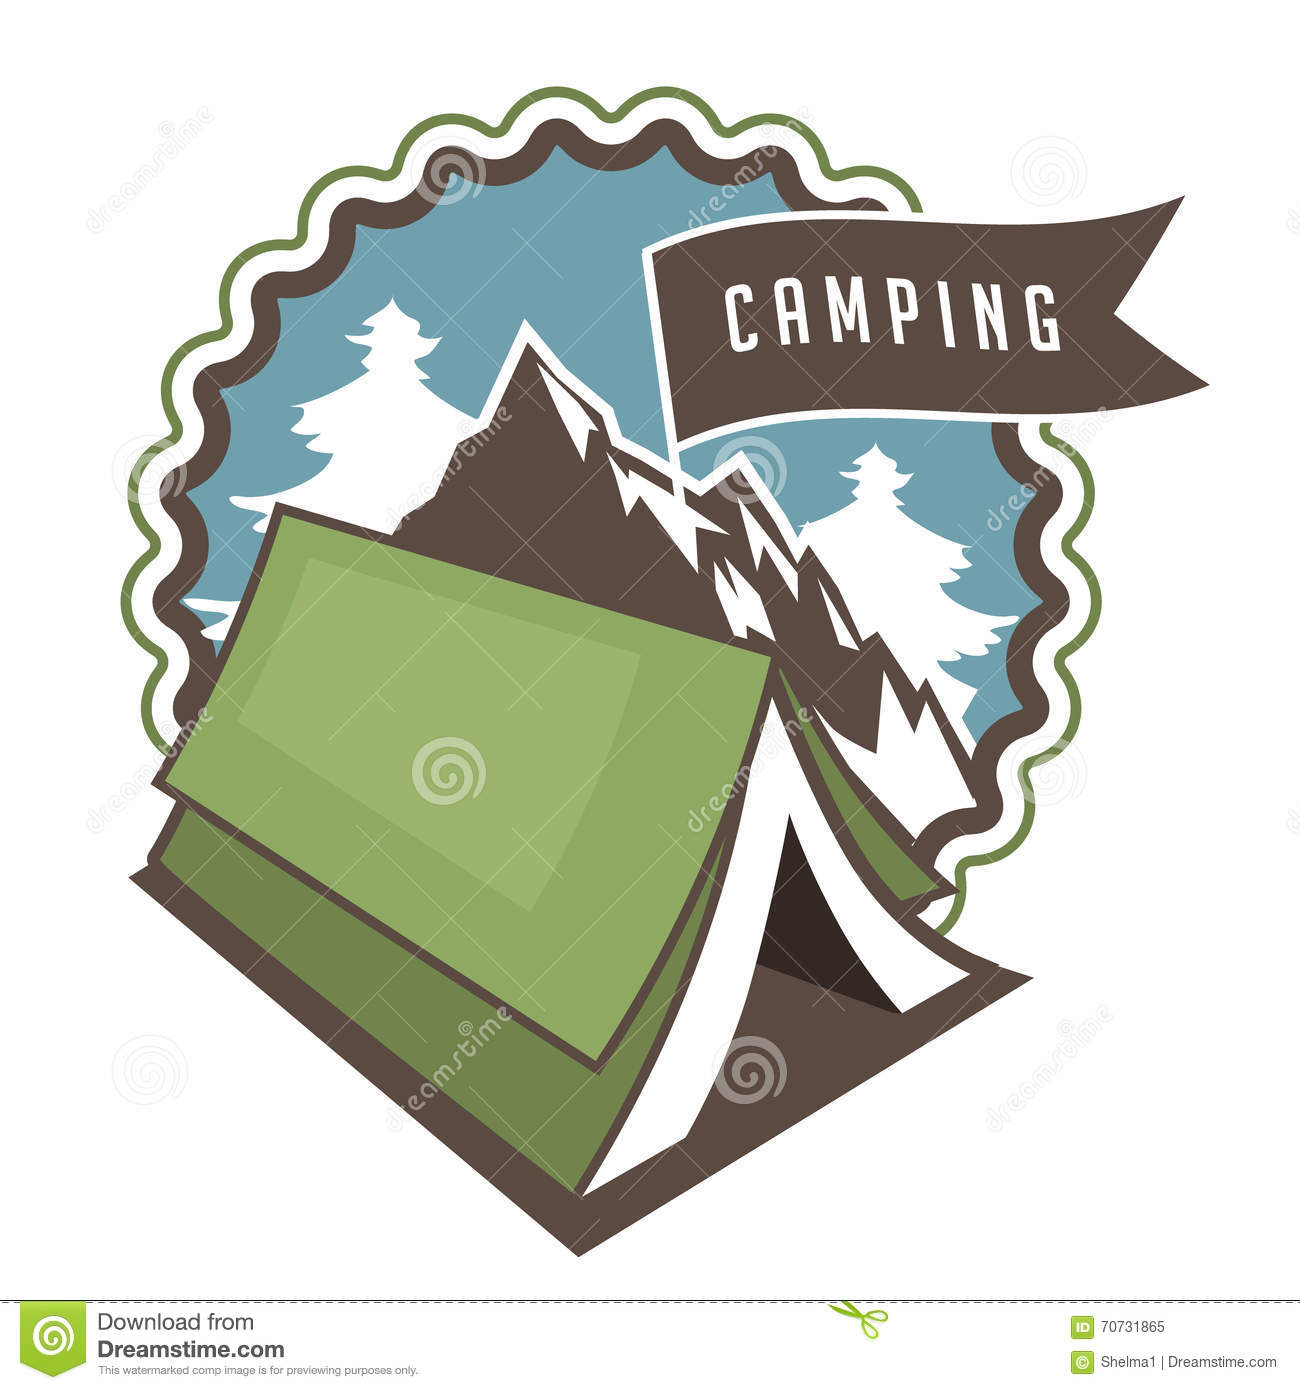 Poster design eps - Vintage Camping Backpacking And Hiking Poster Design Royalty Free Stock Photo